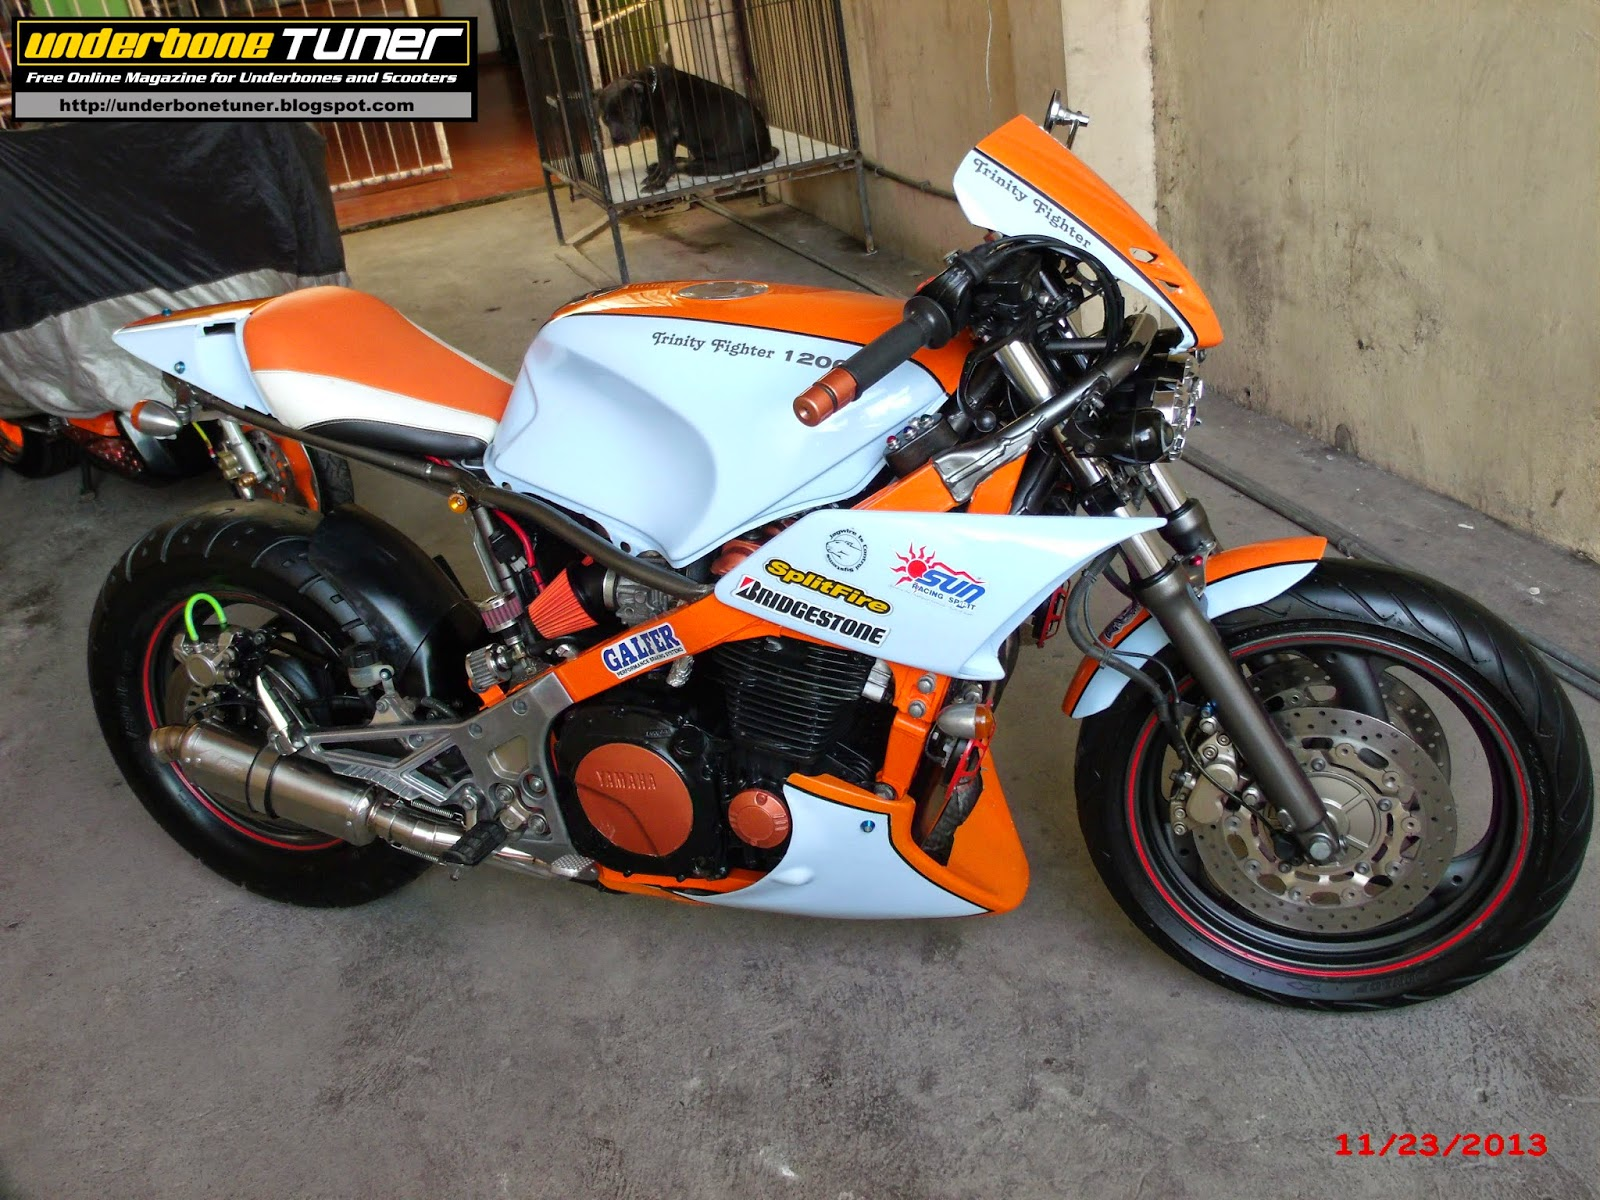 Underbone Tuner: The Yamaha FJ1200 Street Fighter By